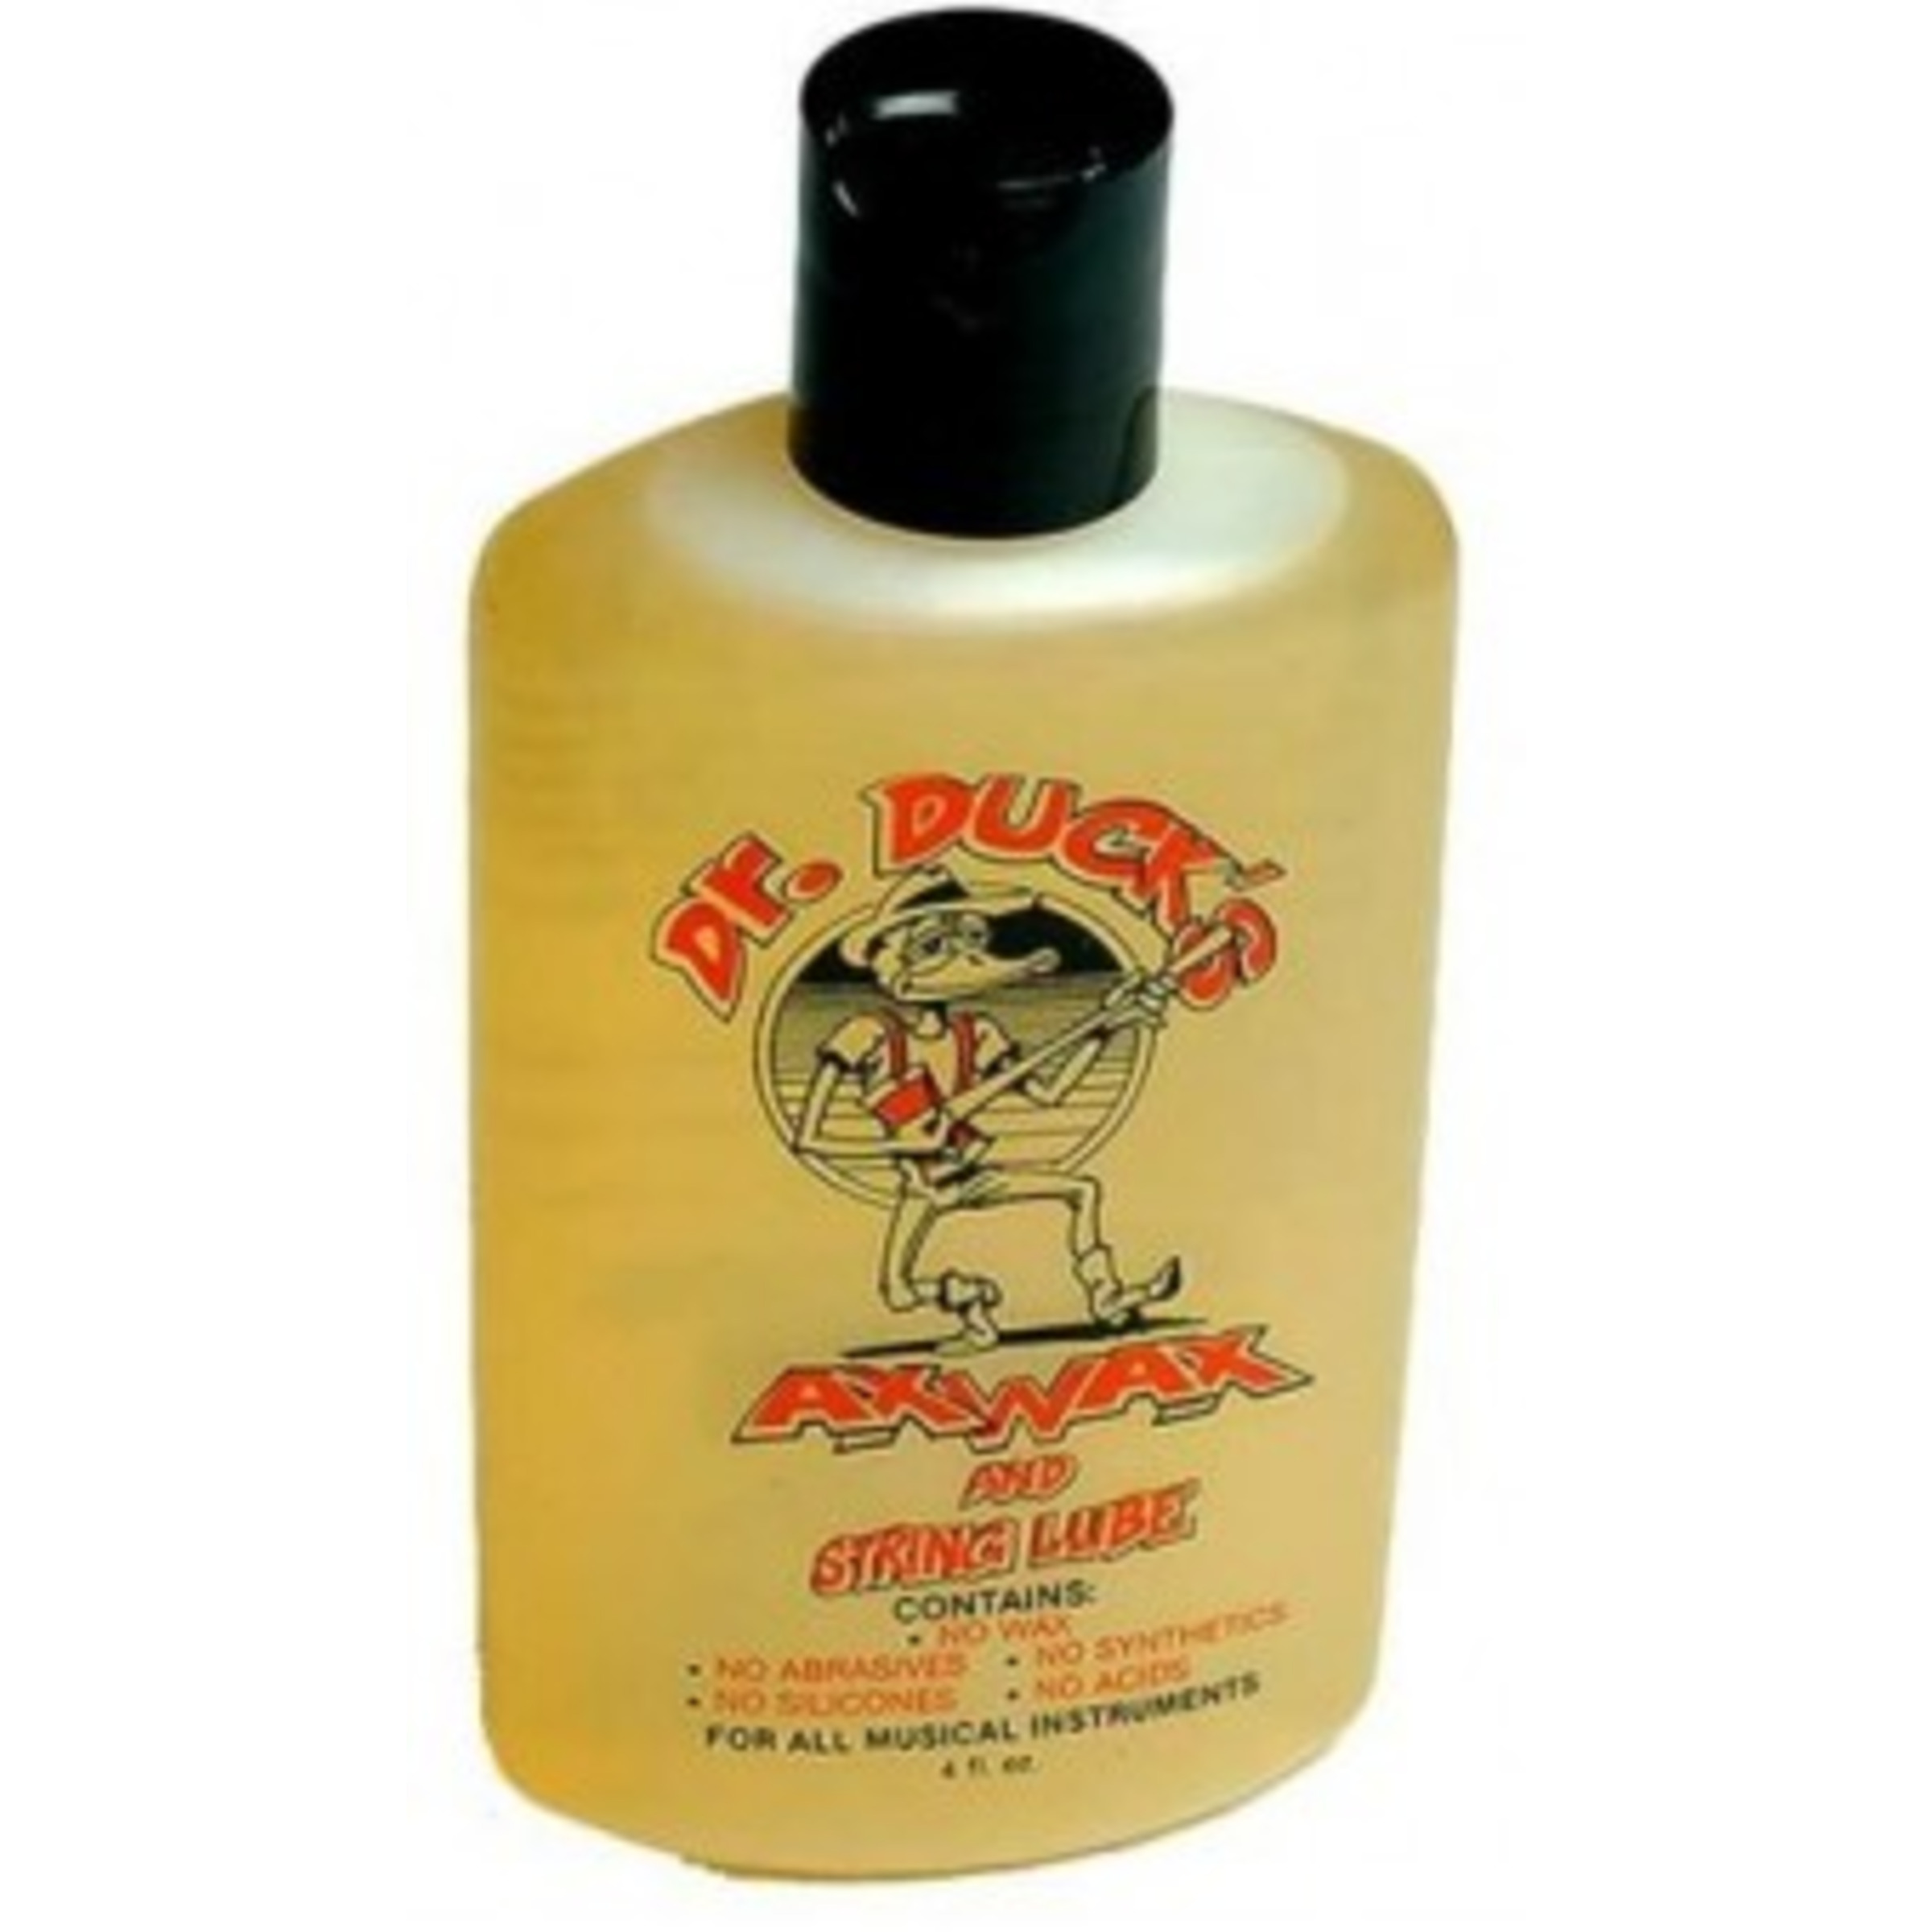 dr duck 39 s ax wax guitar cleaner and string lube giggear. Black Bedroom Furniture Sets. Home Design Ideas